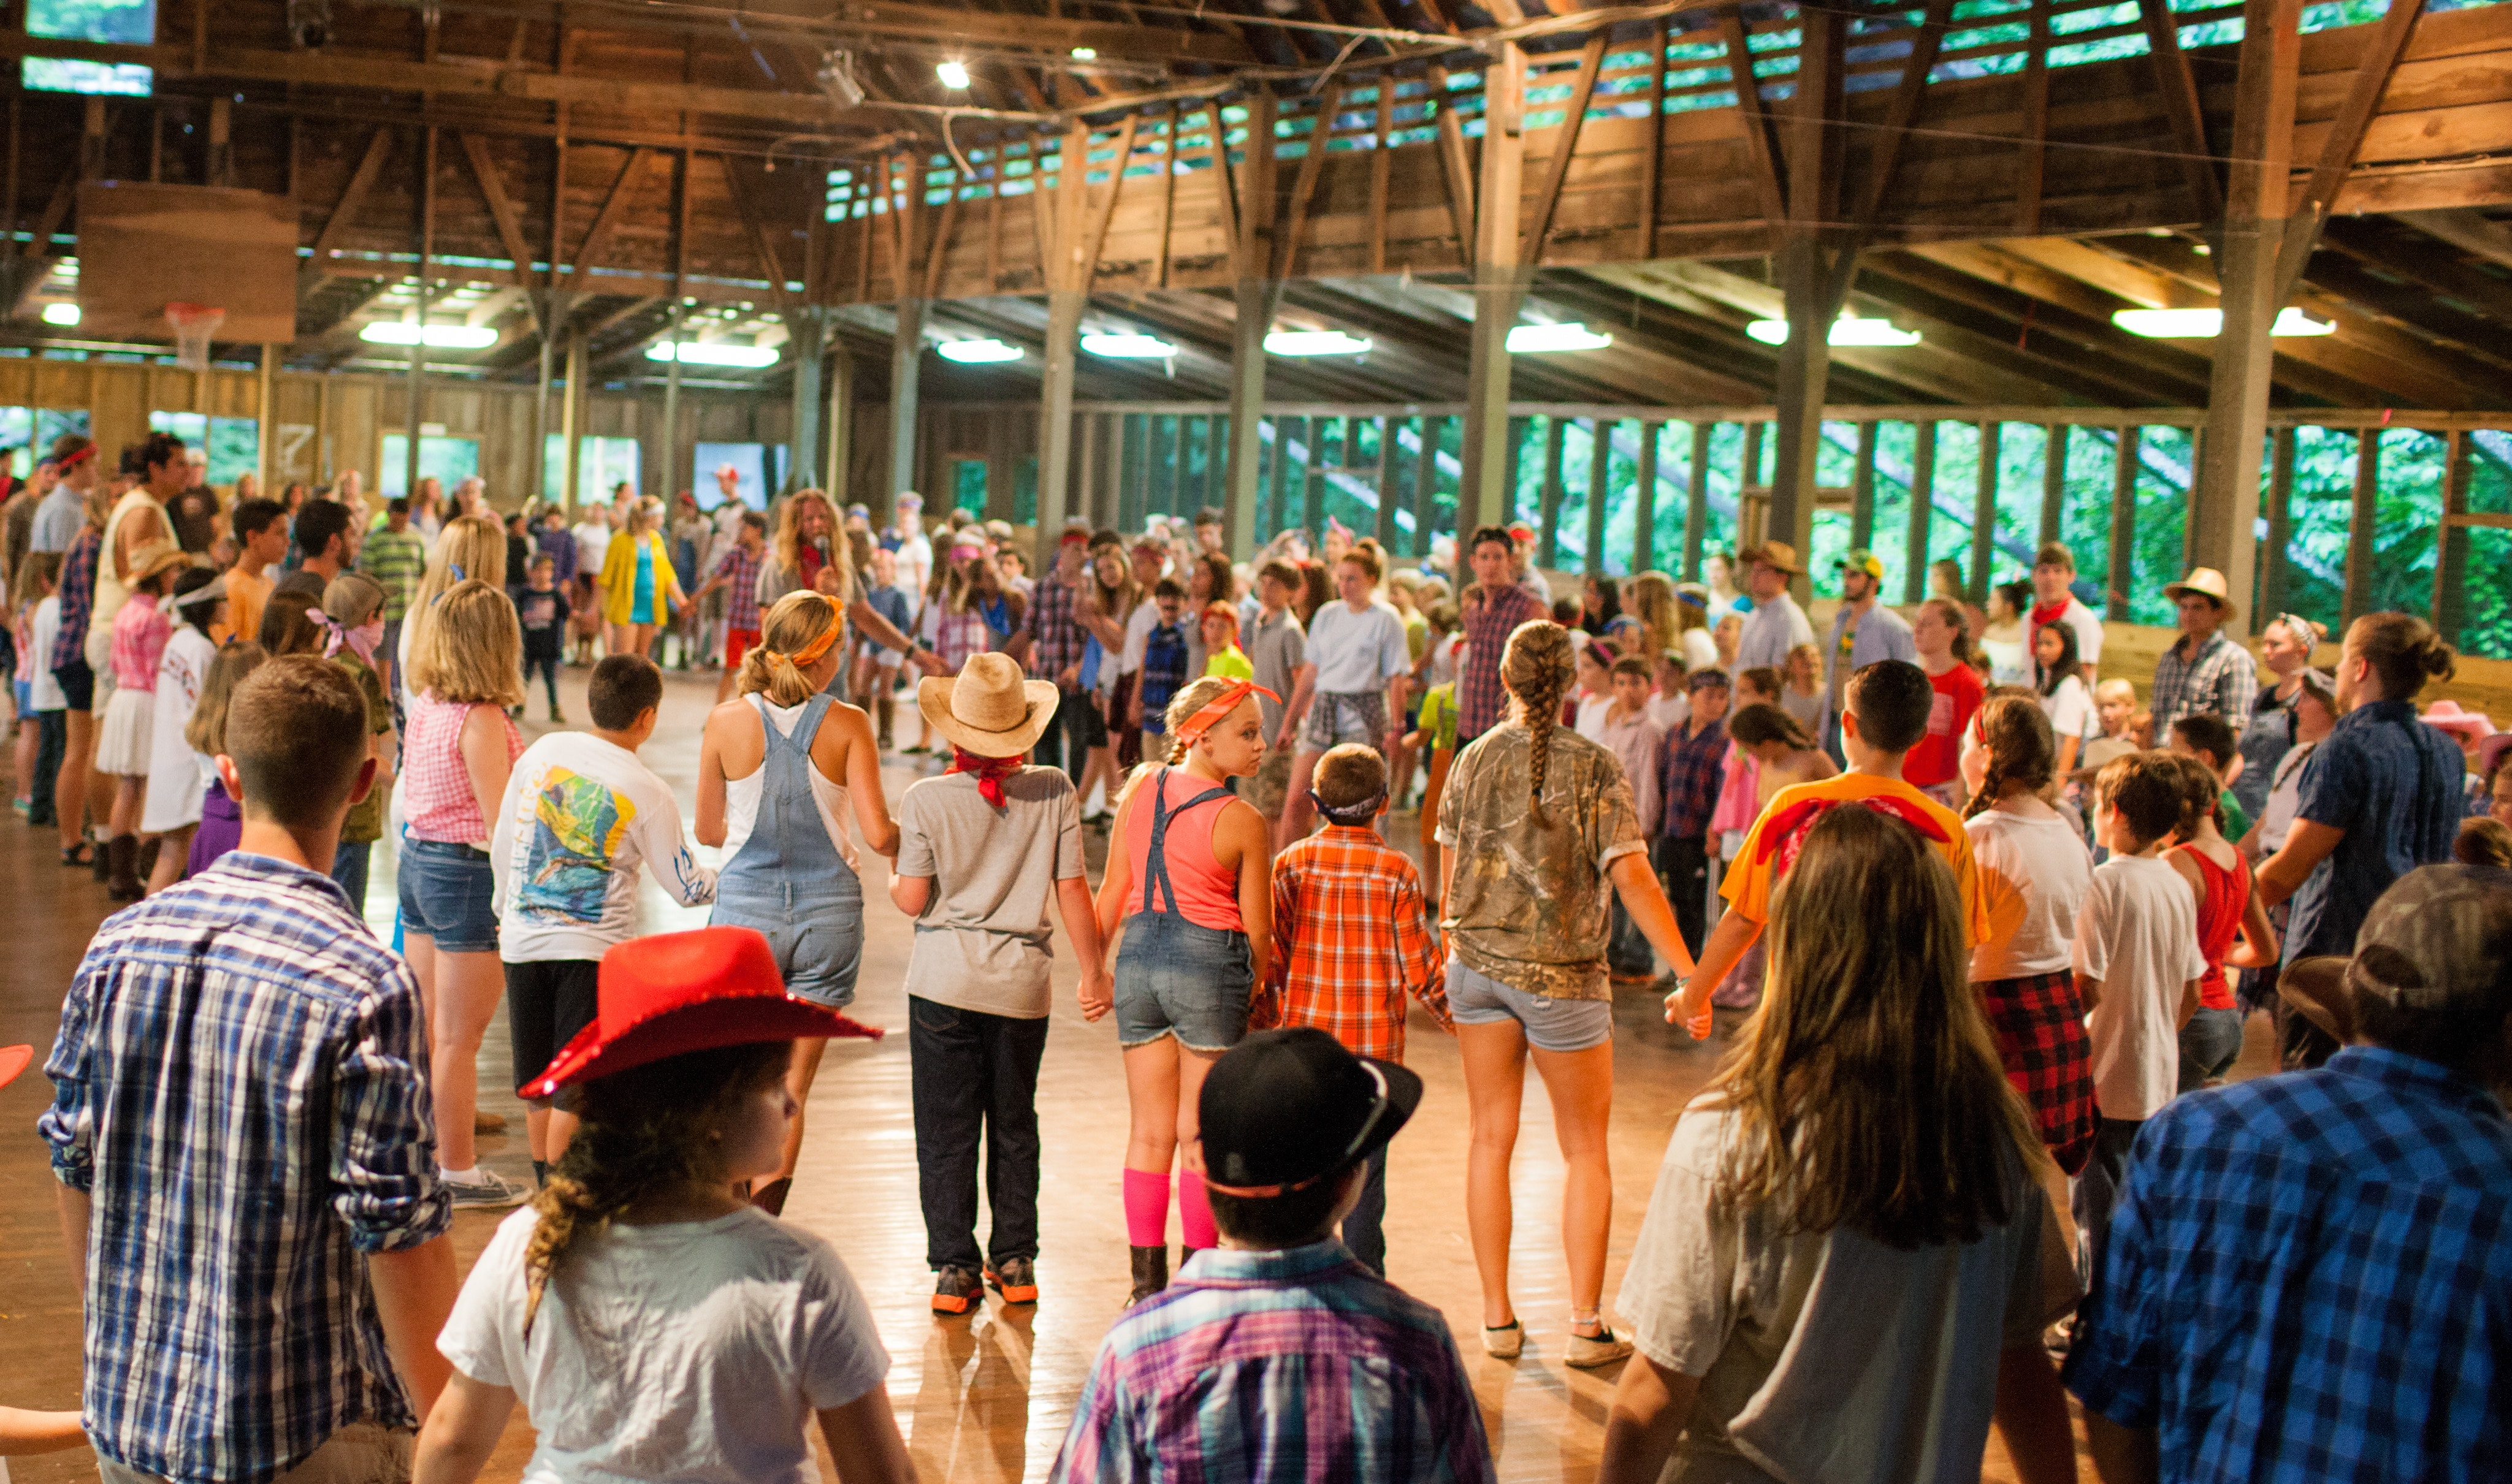 The square dance at camp highlander summer camp for boys and girls in north carolina.jpg?ixlib=rails 2.1